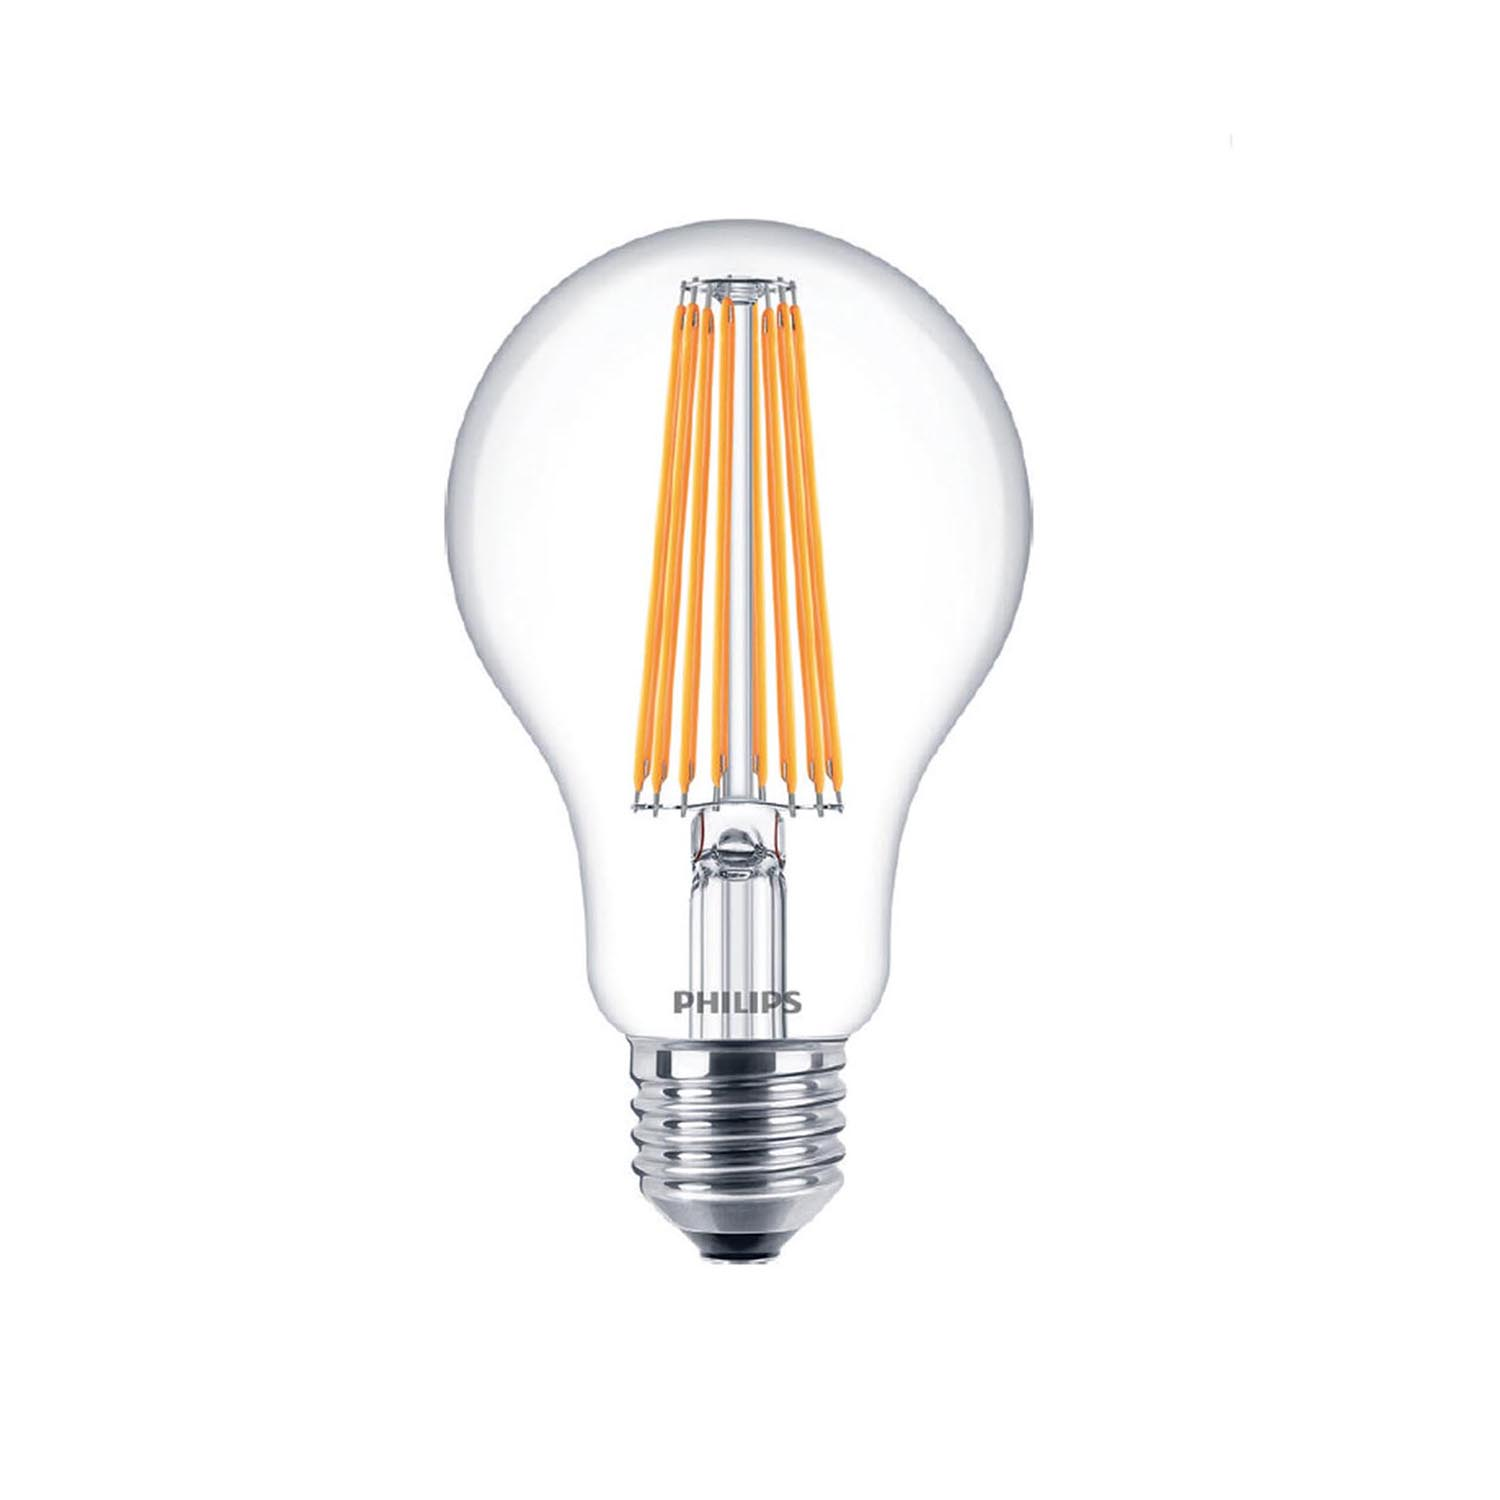 philips led filament bulb clear a60 e27 11w 2700k. Black Bedroom Furniture Sets. Home Design Ideas